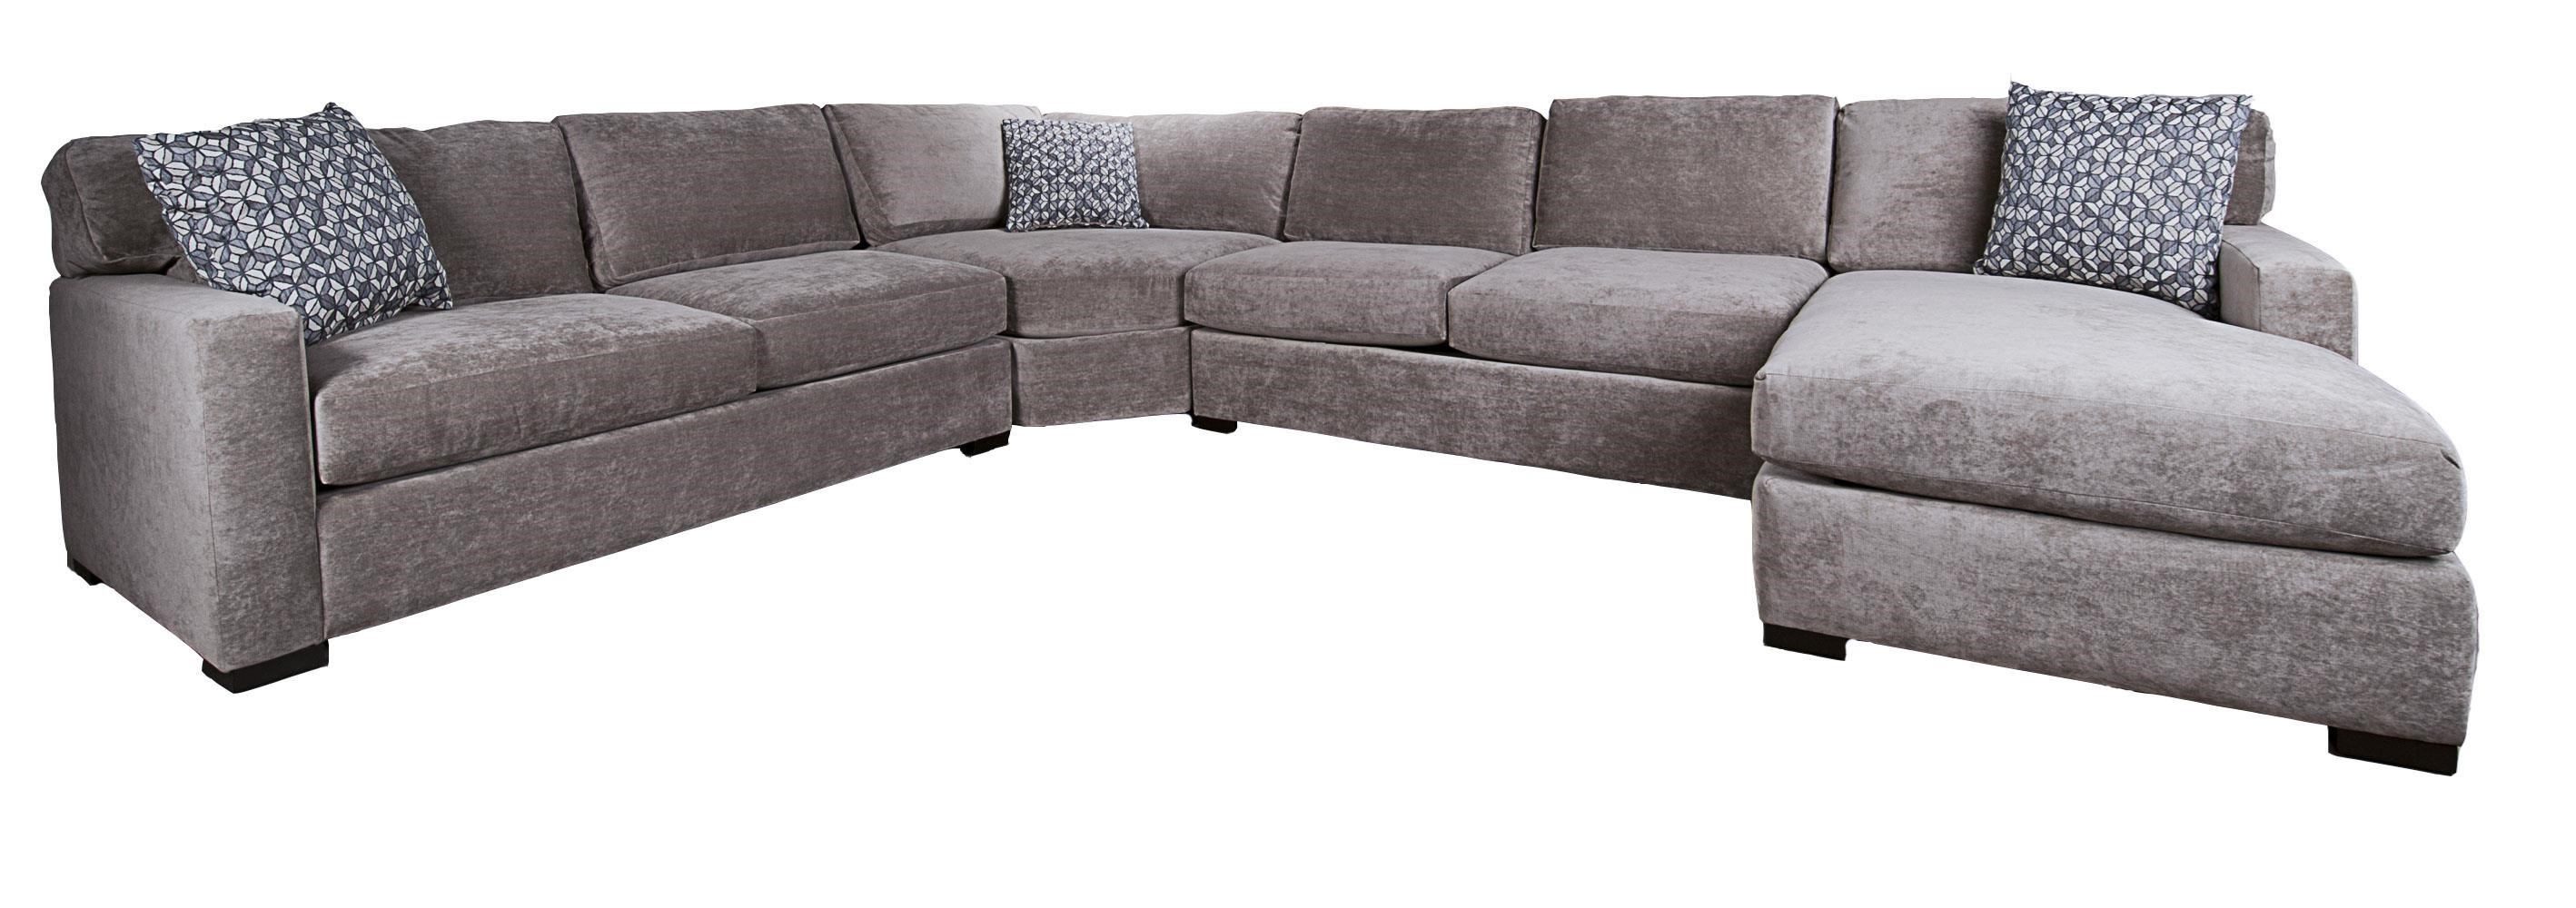 Morris Home Furnishings Blythe Blythe 4-Piece Sectional - Item Number: 118116523